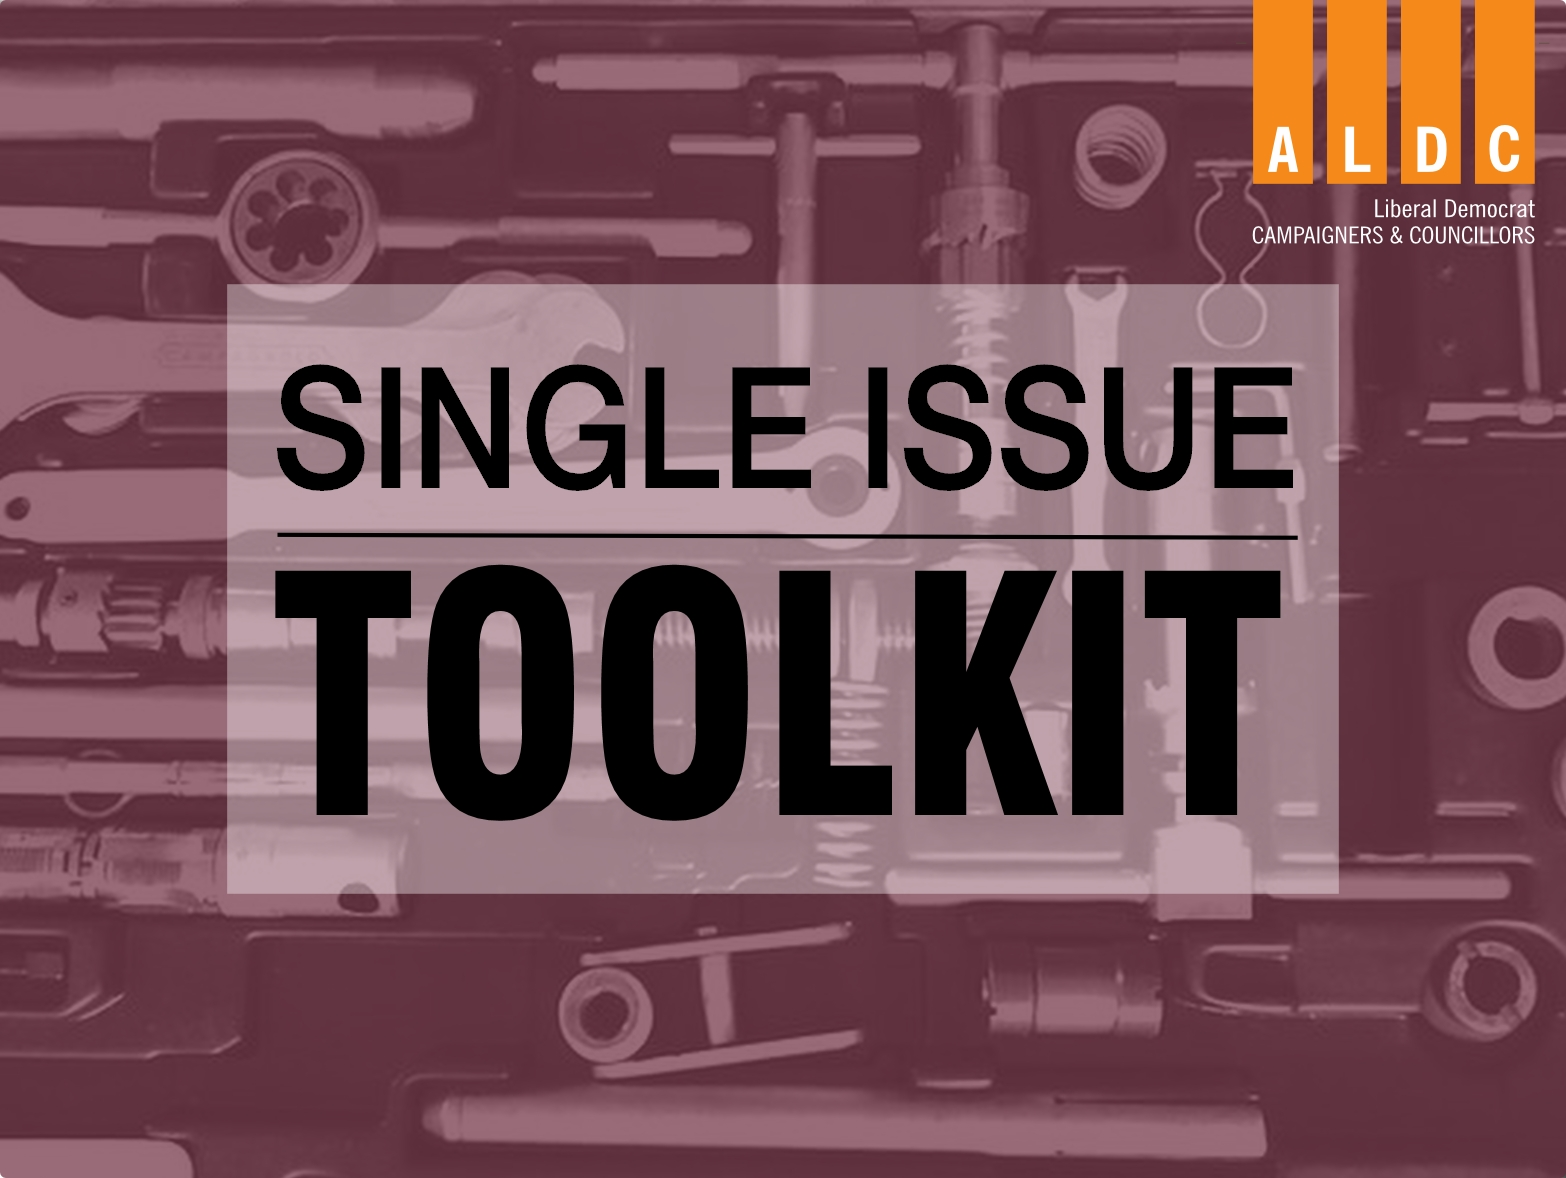 Toolkit: Single Issue campaign templates and advice